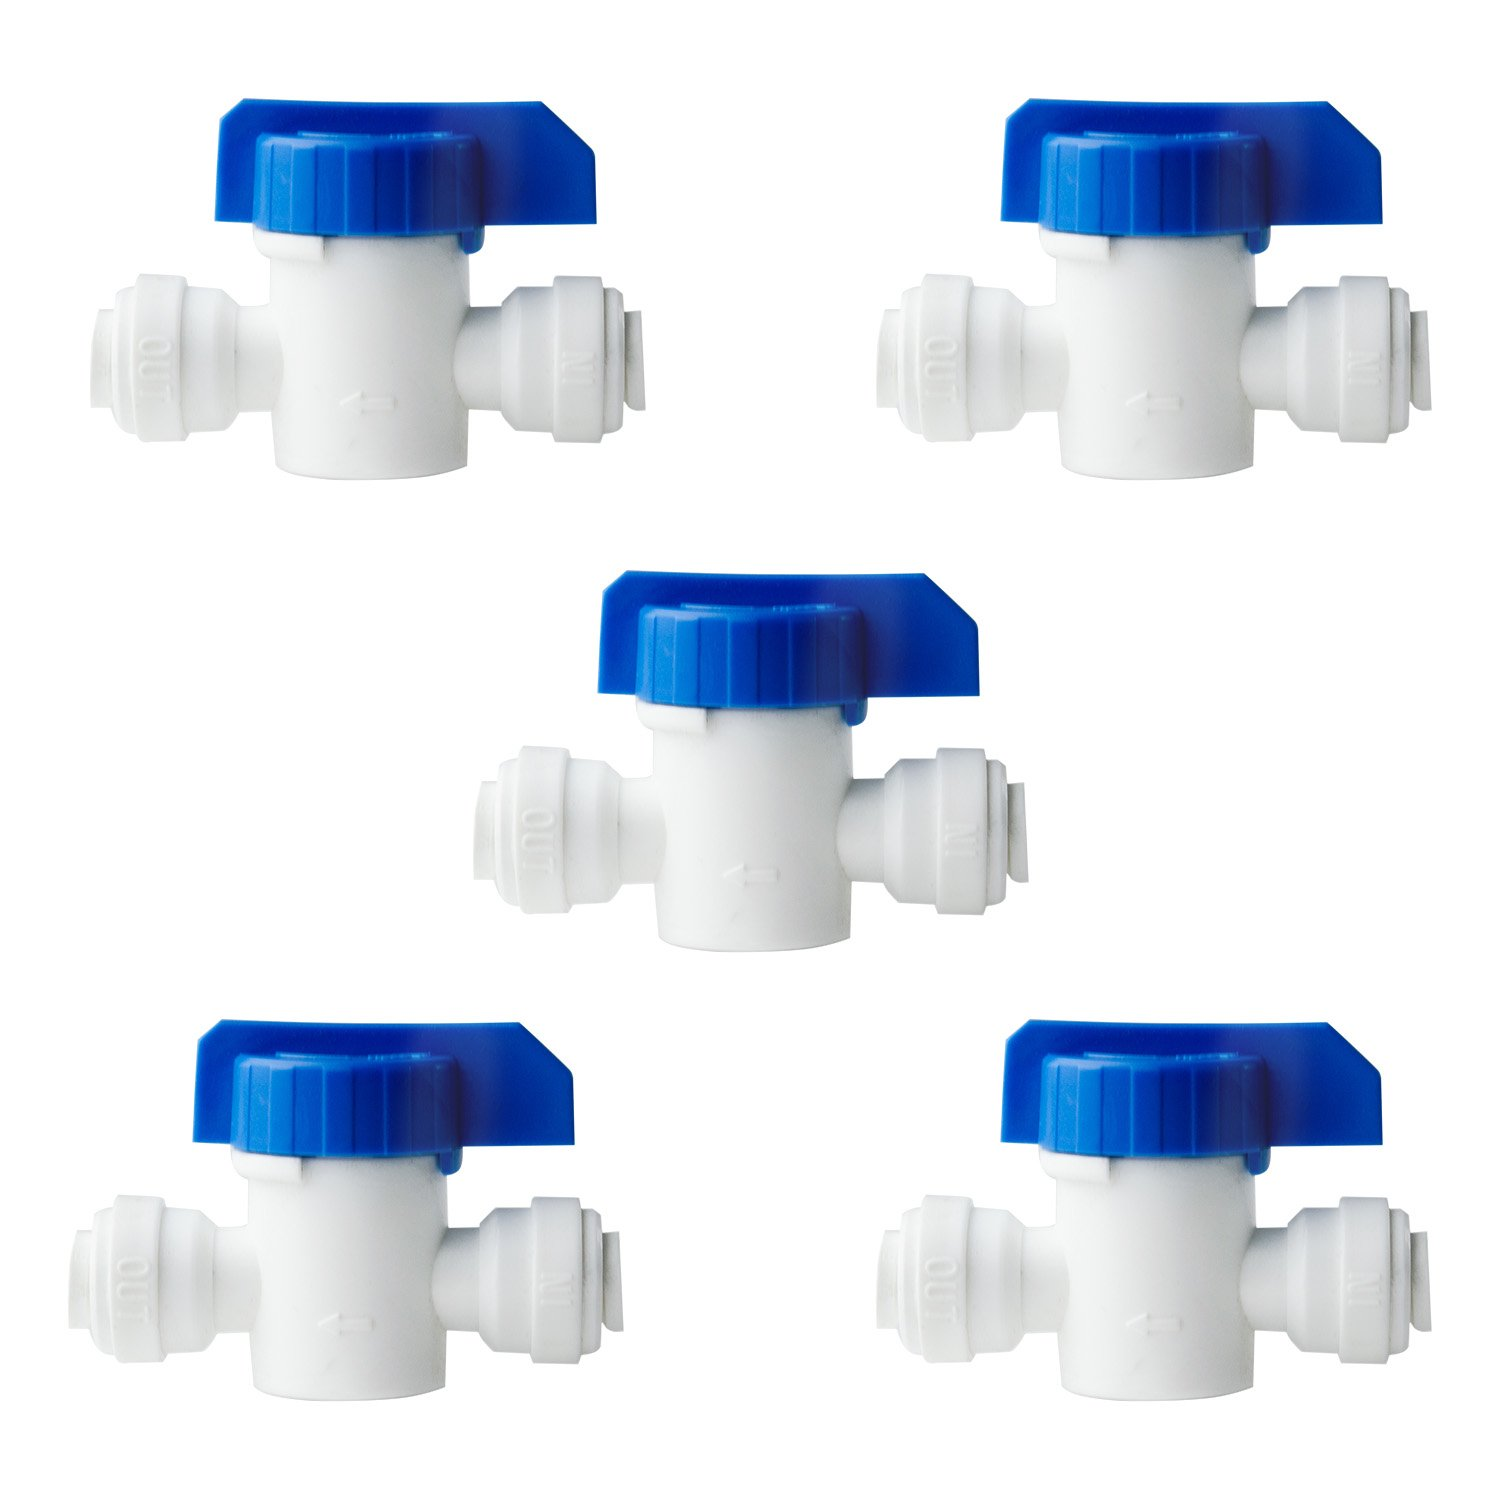 iSpring ABV1KX5 ABV1K Inline Ball Valve with Quick Fitting 1/4'' to 1/4'' fits most RO Water Systems, White